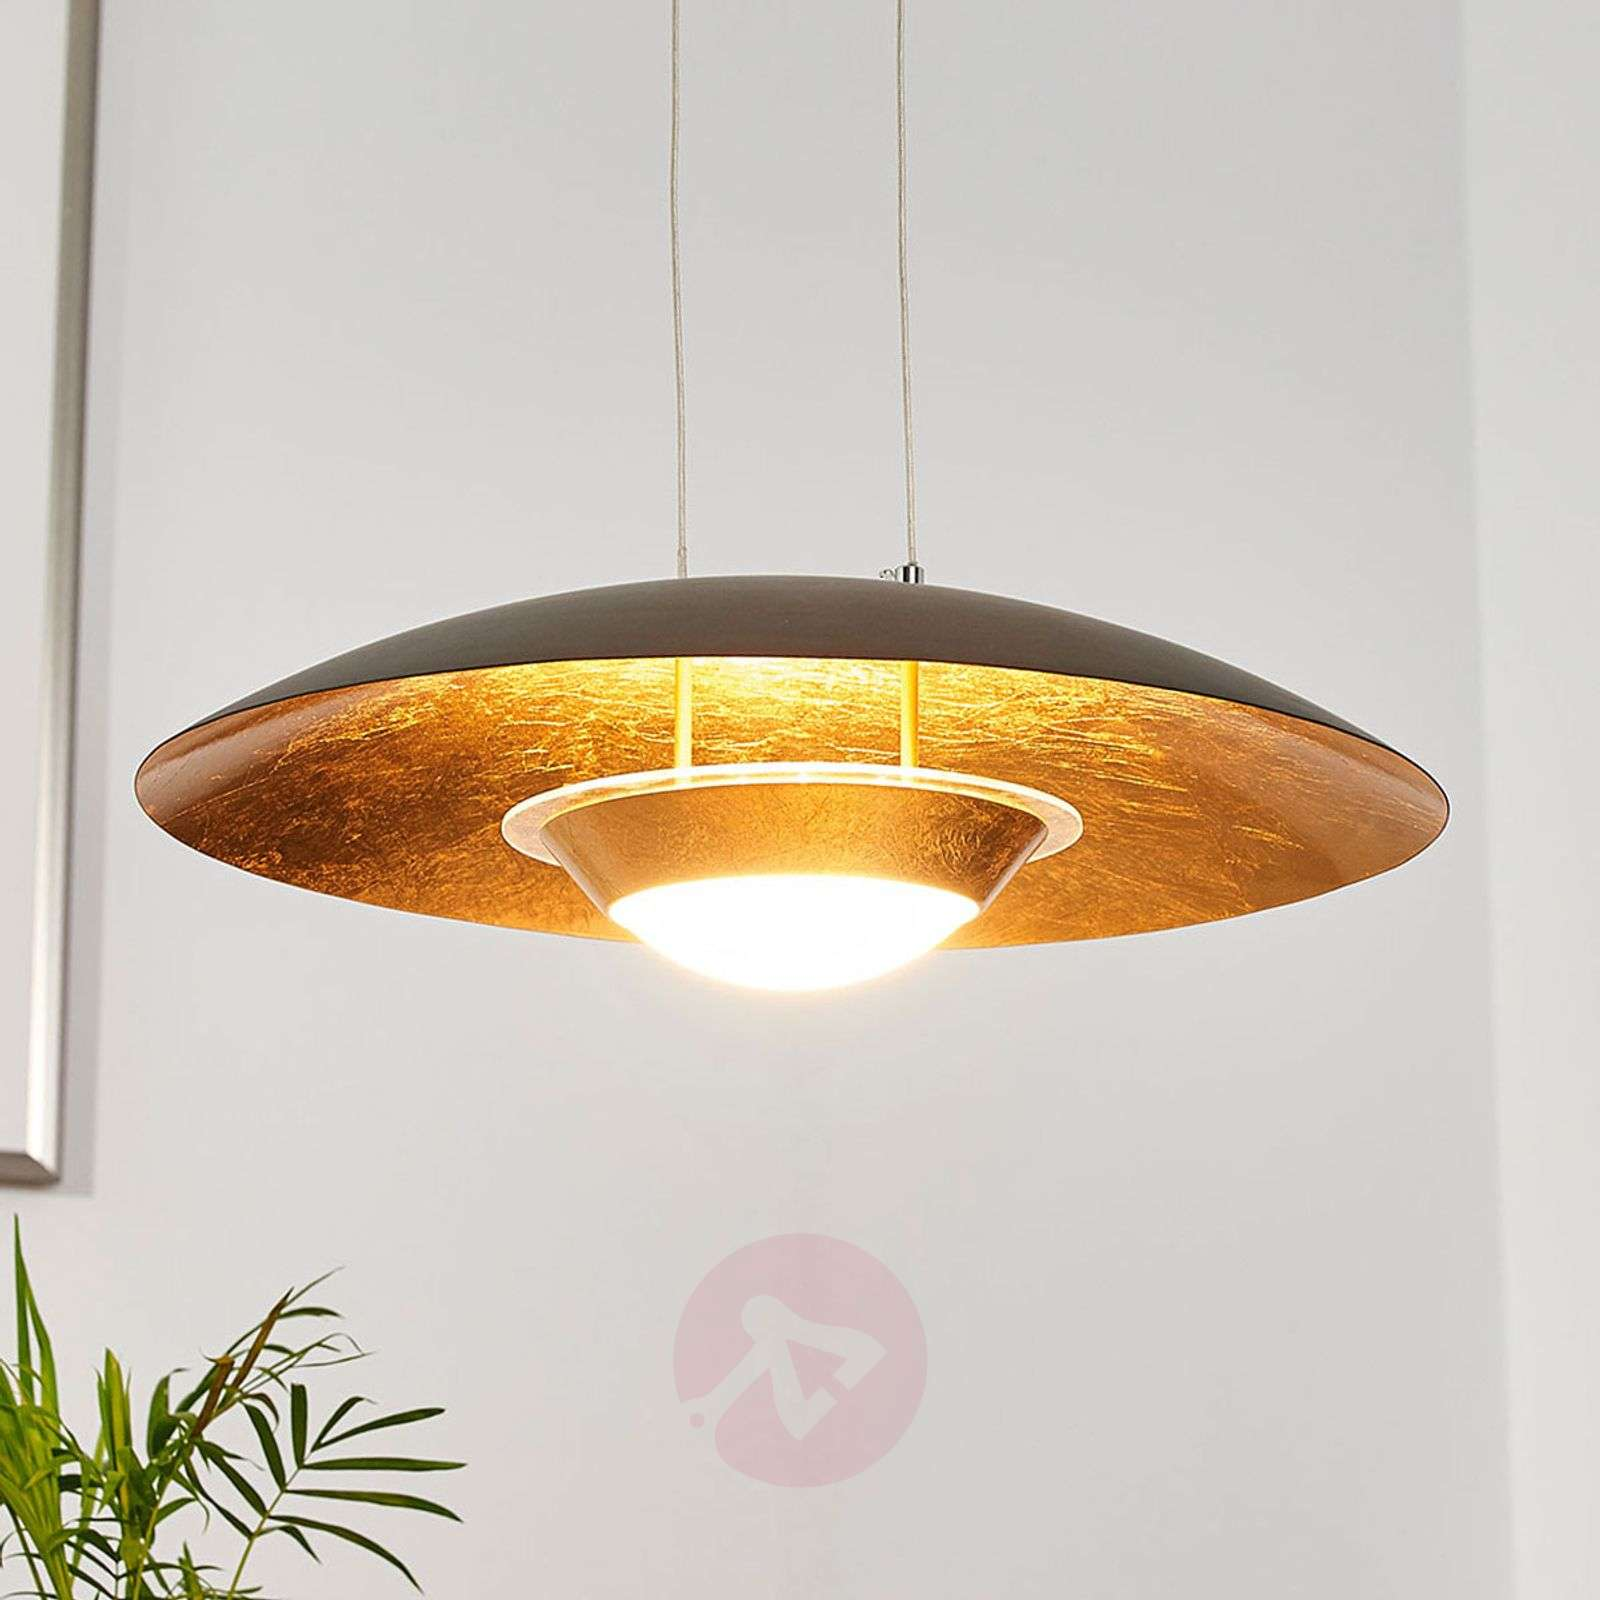 Attractive LED pendant lamp Yasien, black and gold-9625138-02